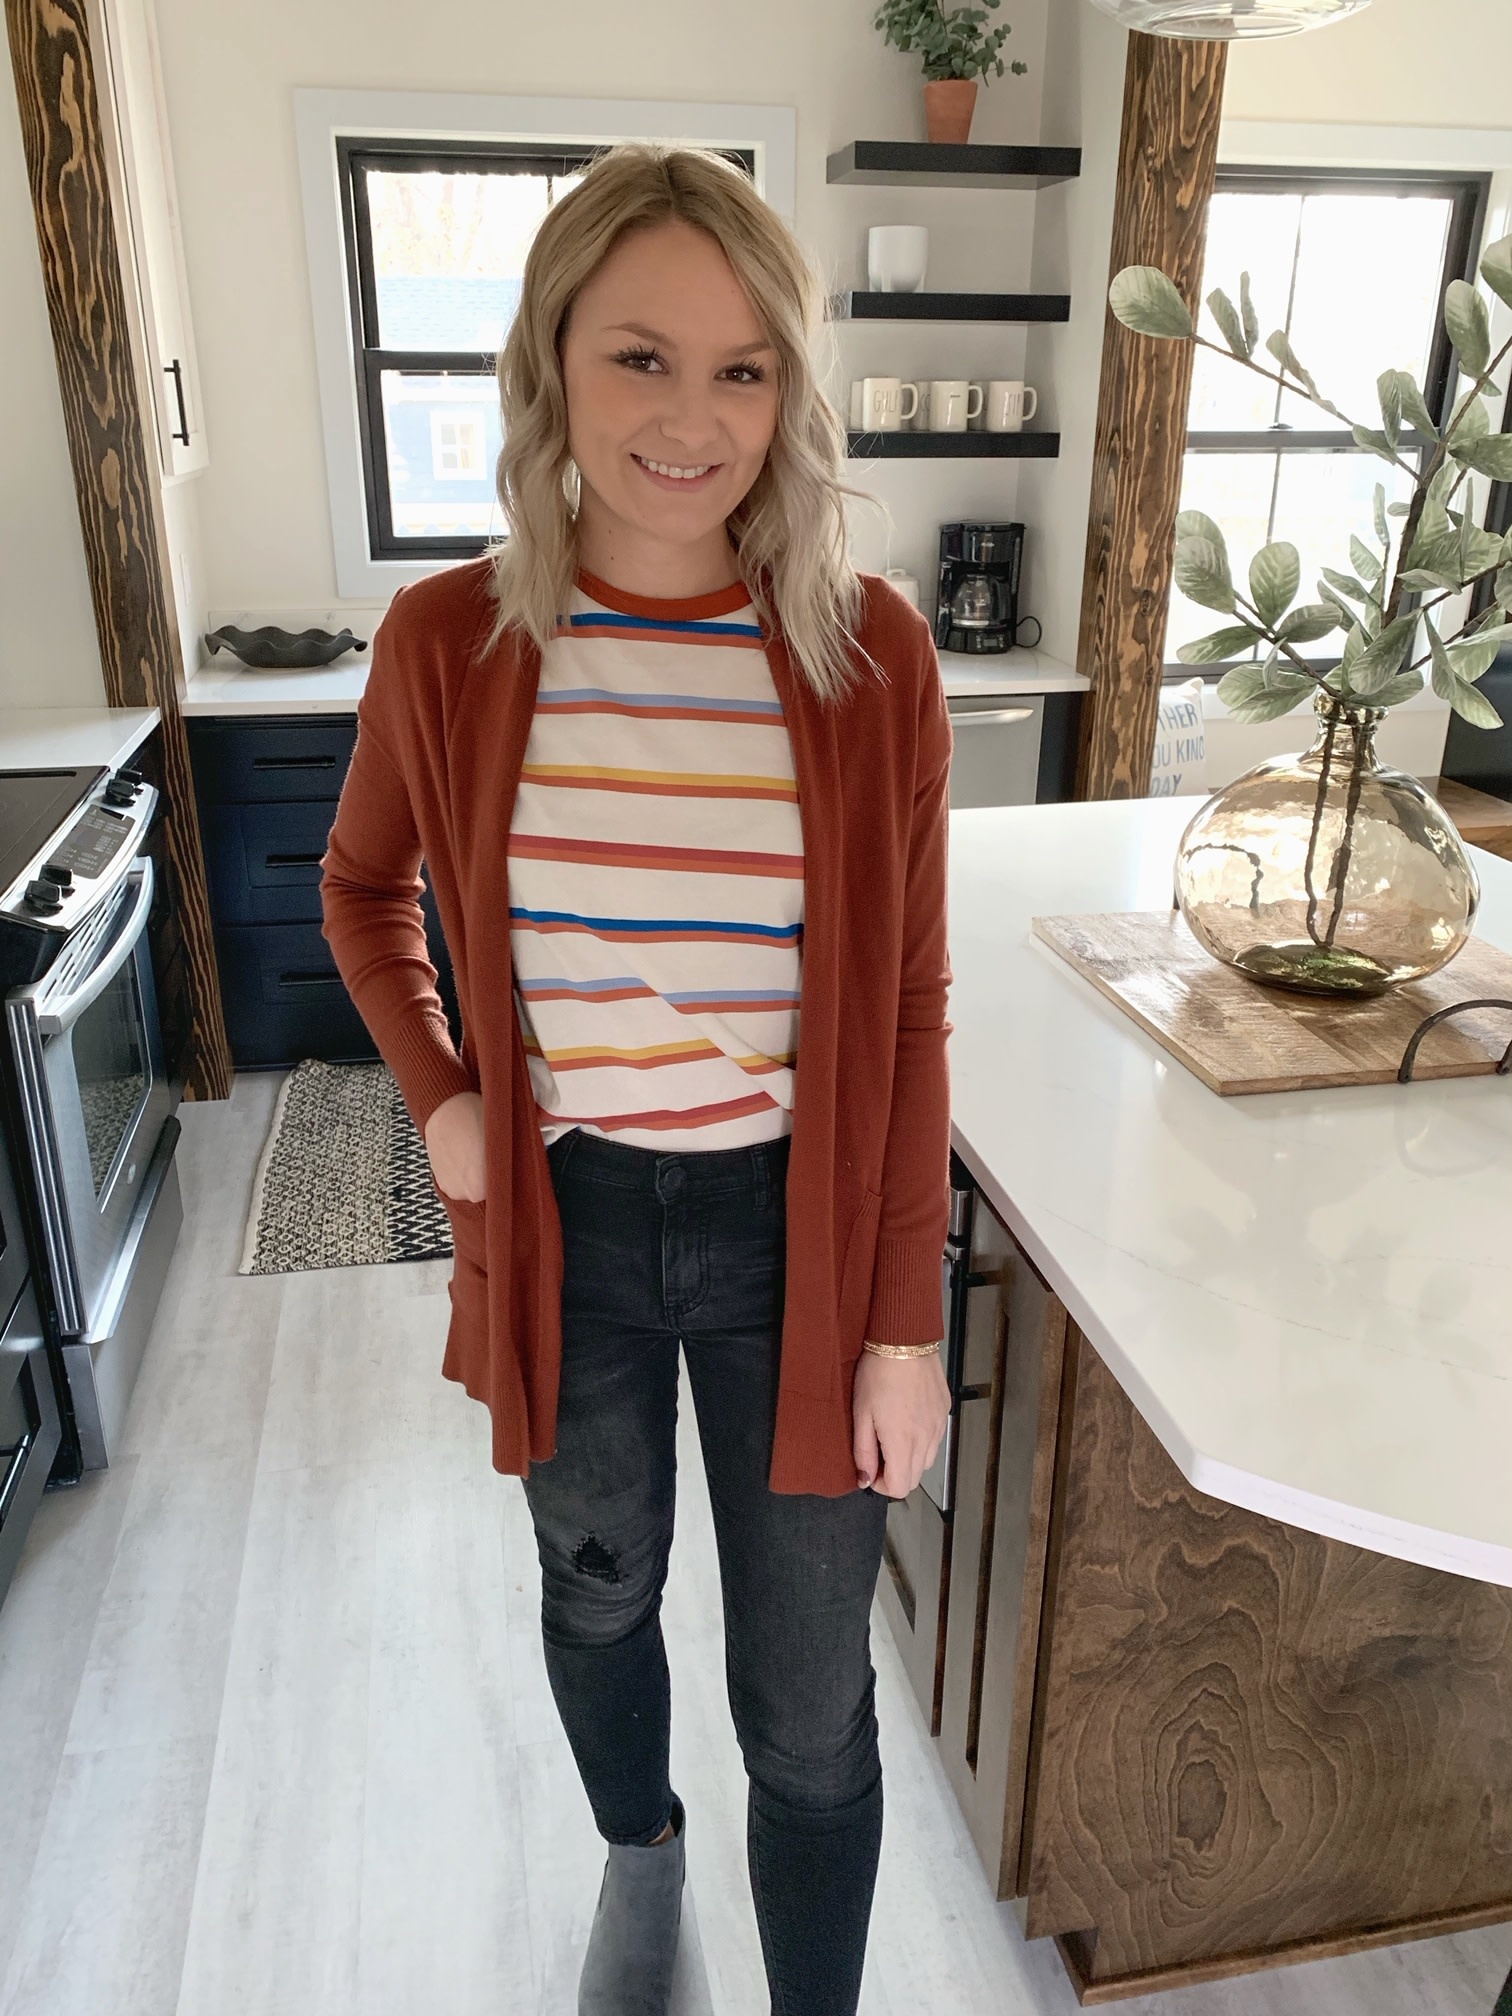 Carly Striped Top